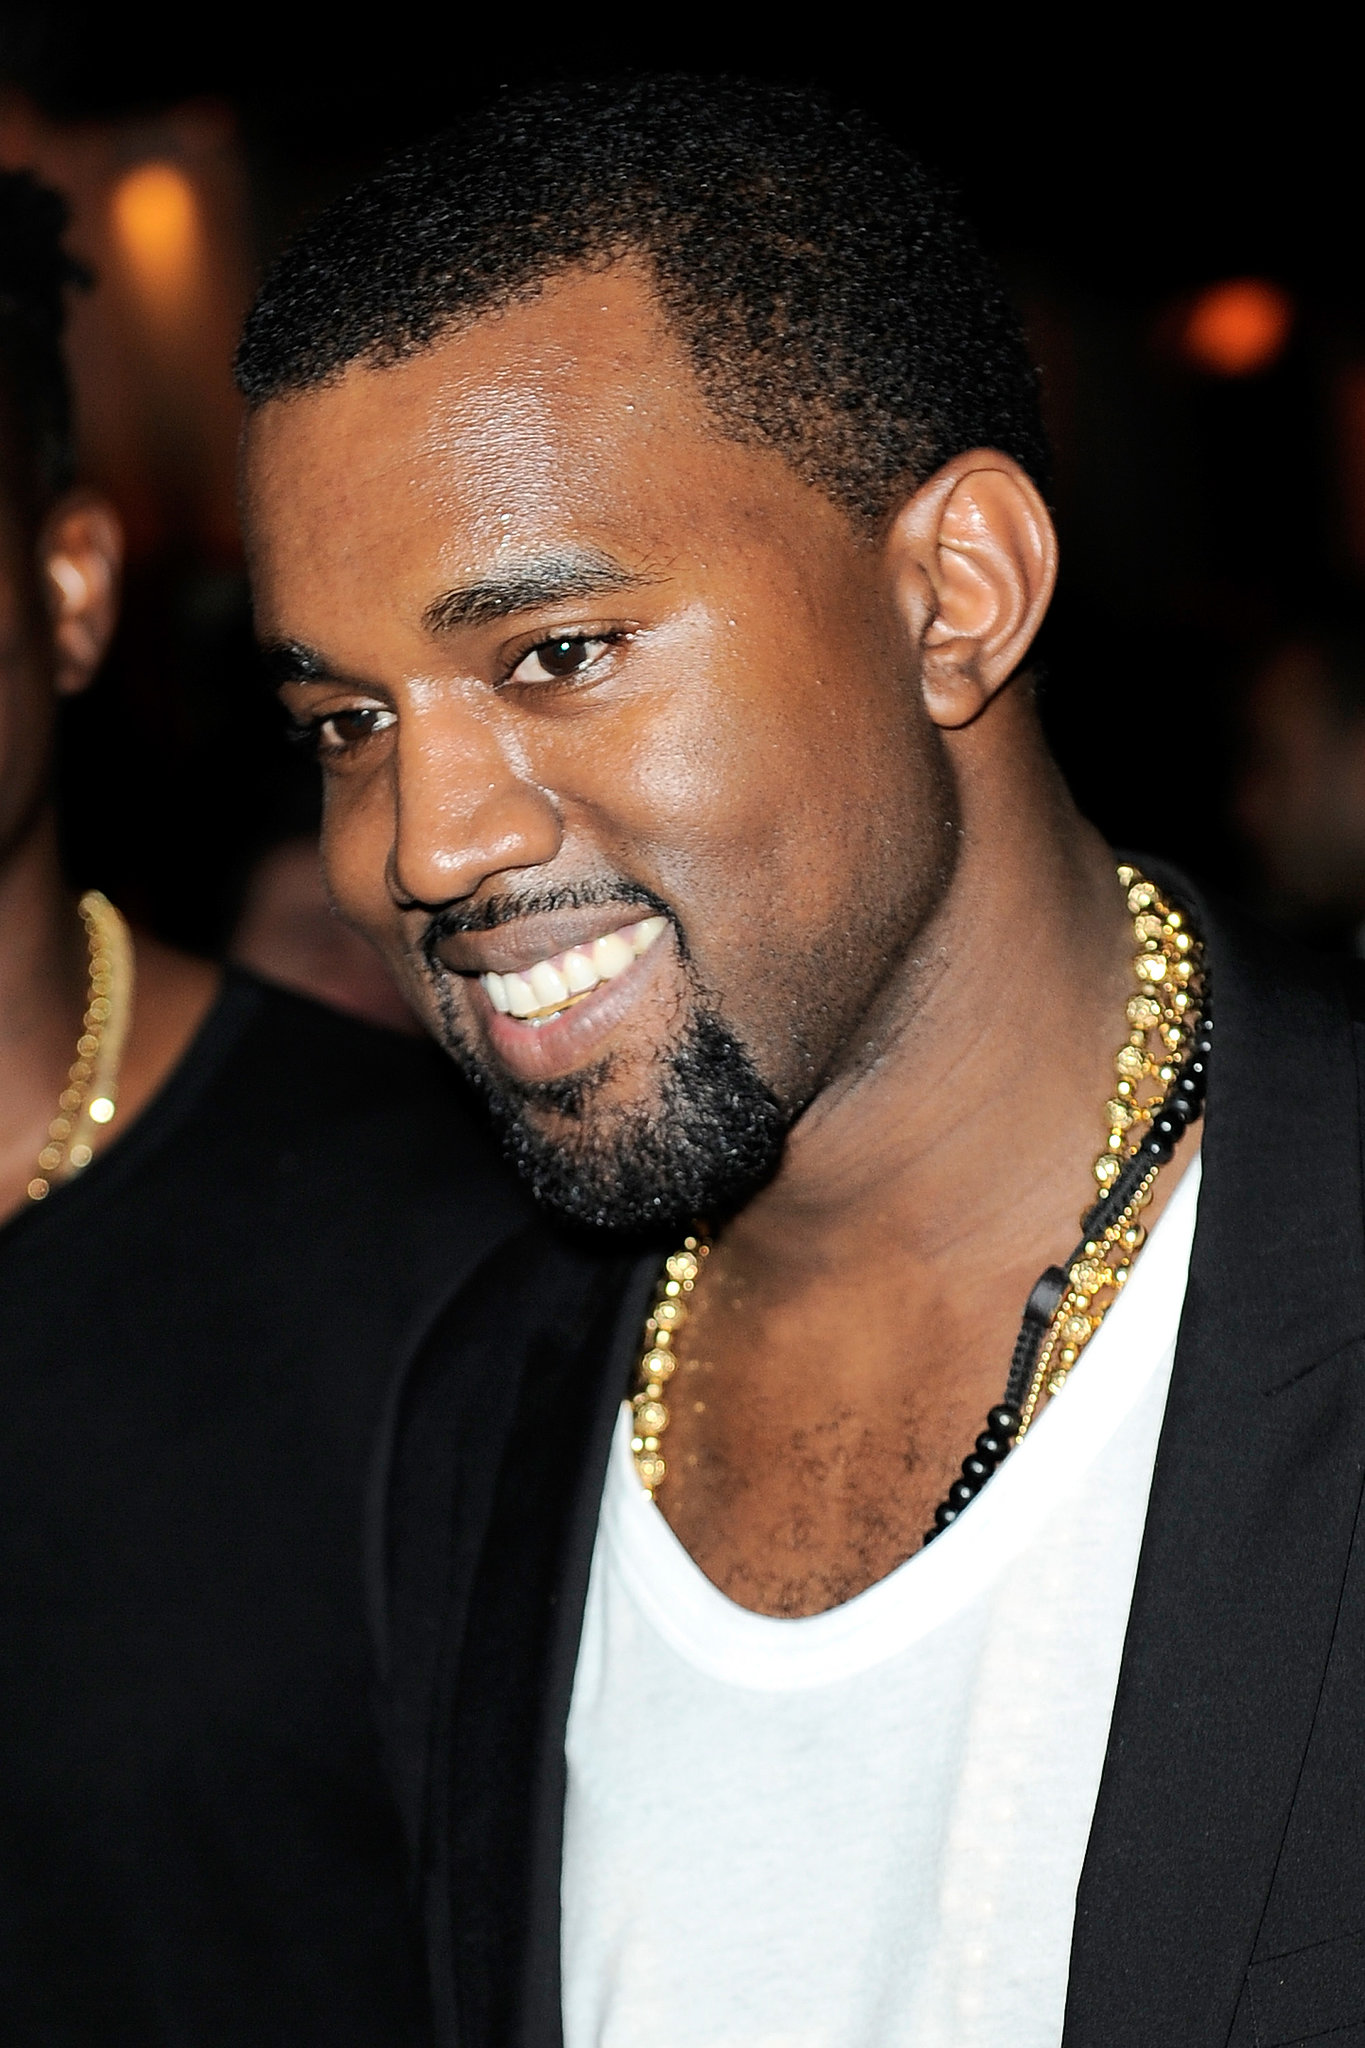 """Kanye West tweeted about abortion and gold diggers in 2011: """"[A]n abortion can cost a ballin' n**** up to 50gs maybe a 100. Gold diggin' bitches be getting pregnant on purpose. #STRAPUP my n*****!"""""""